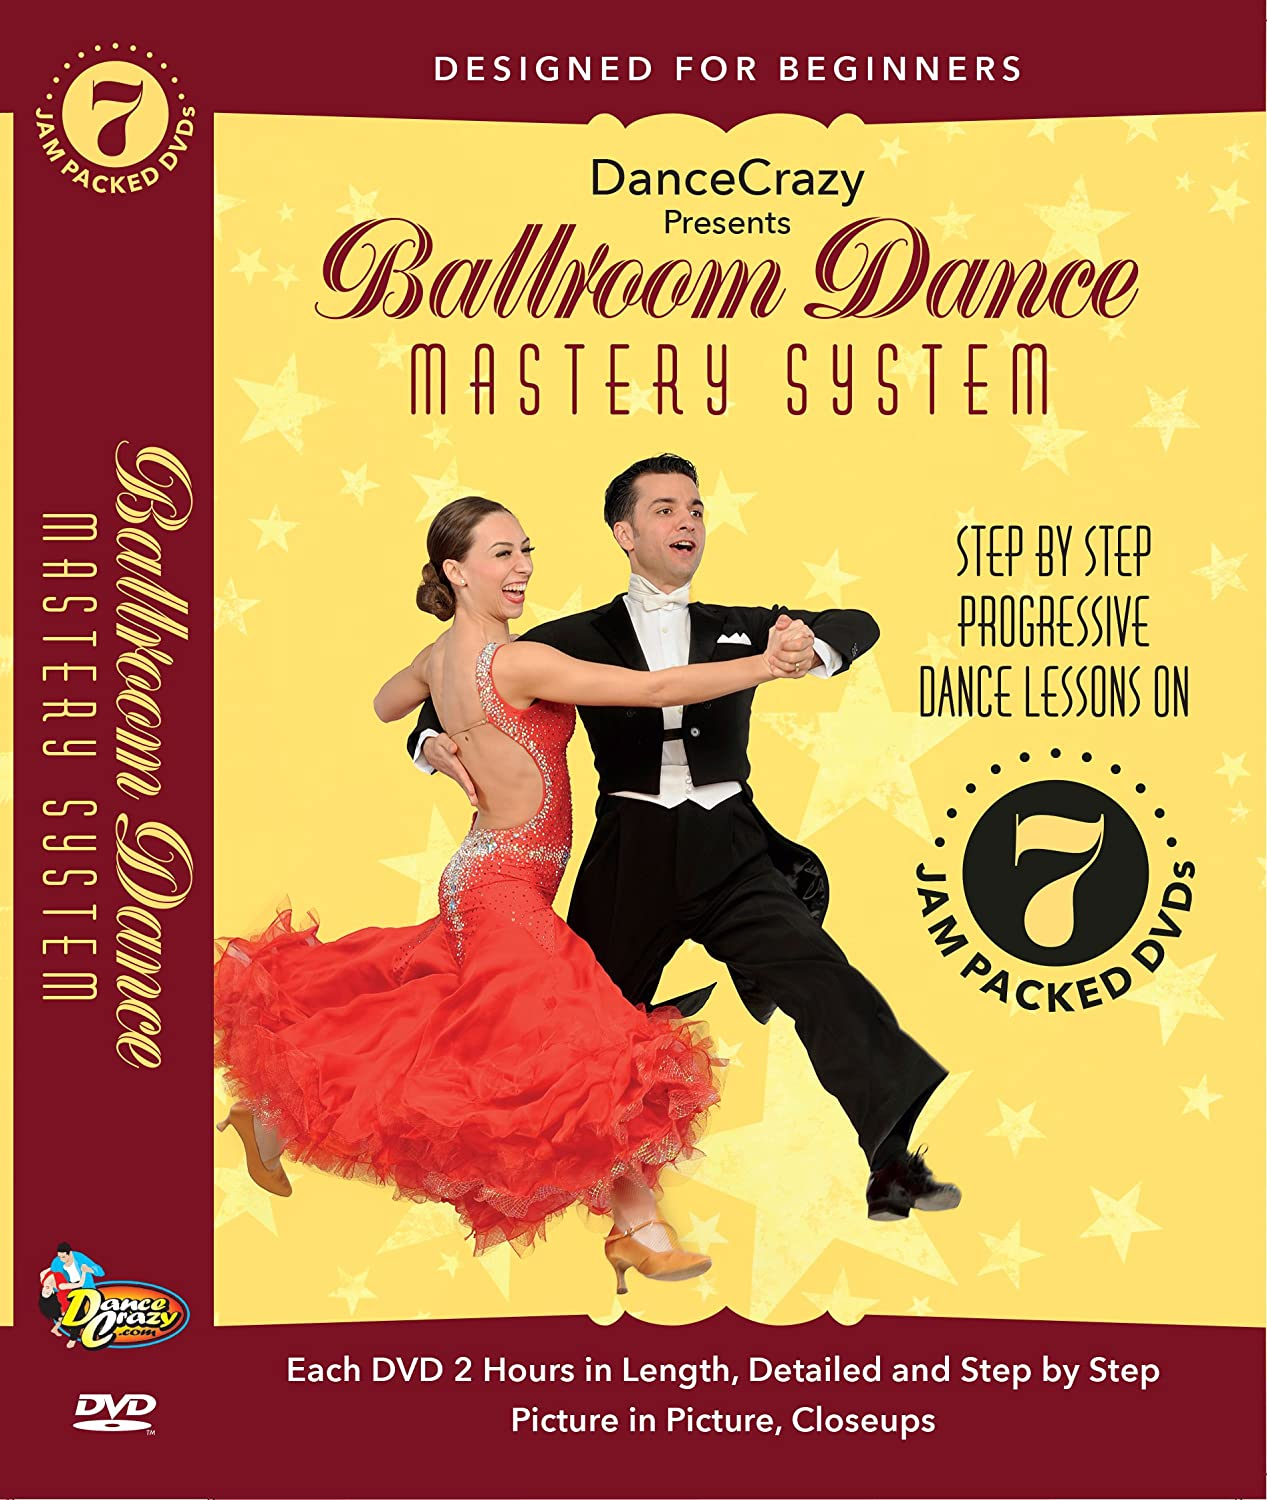 Ballroom Dance Mastery System Step By Progressive Rumba Diagram Lessons Dancers Dancecrazy Movies Tv